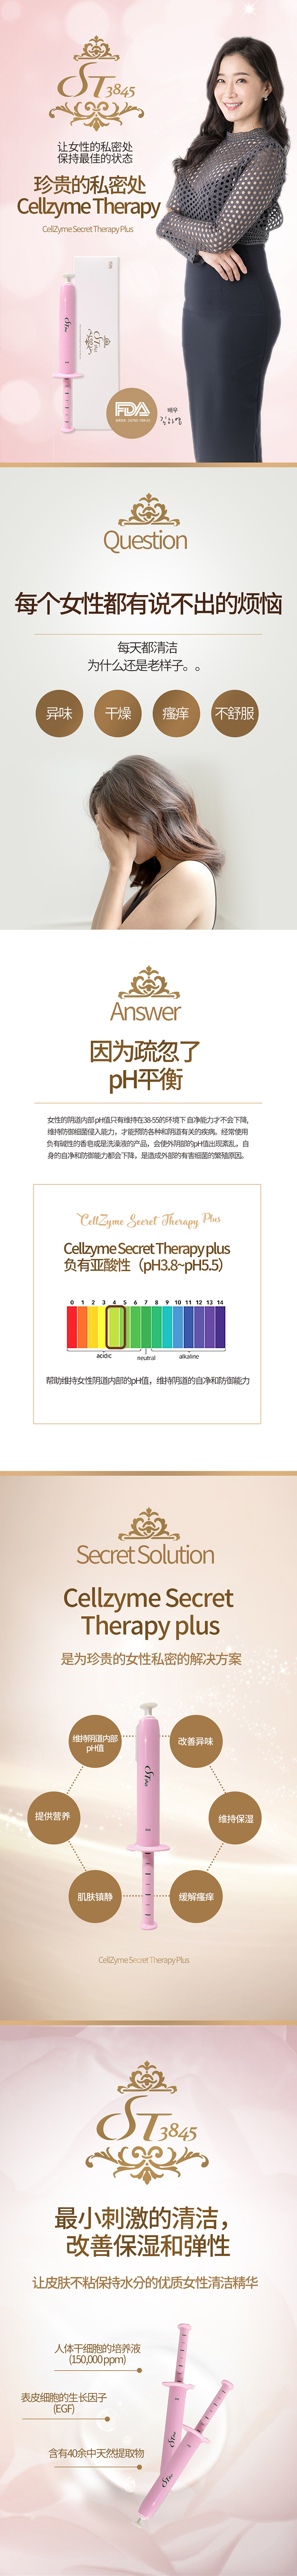 cellzyme therapy